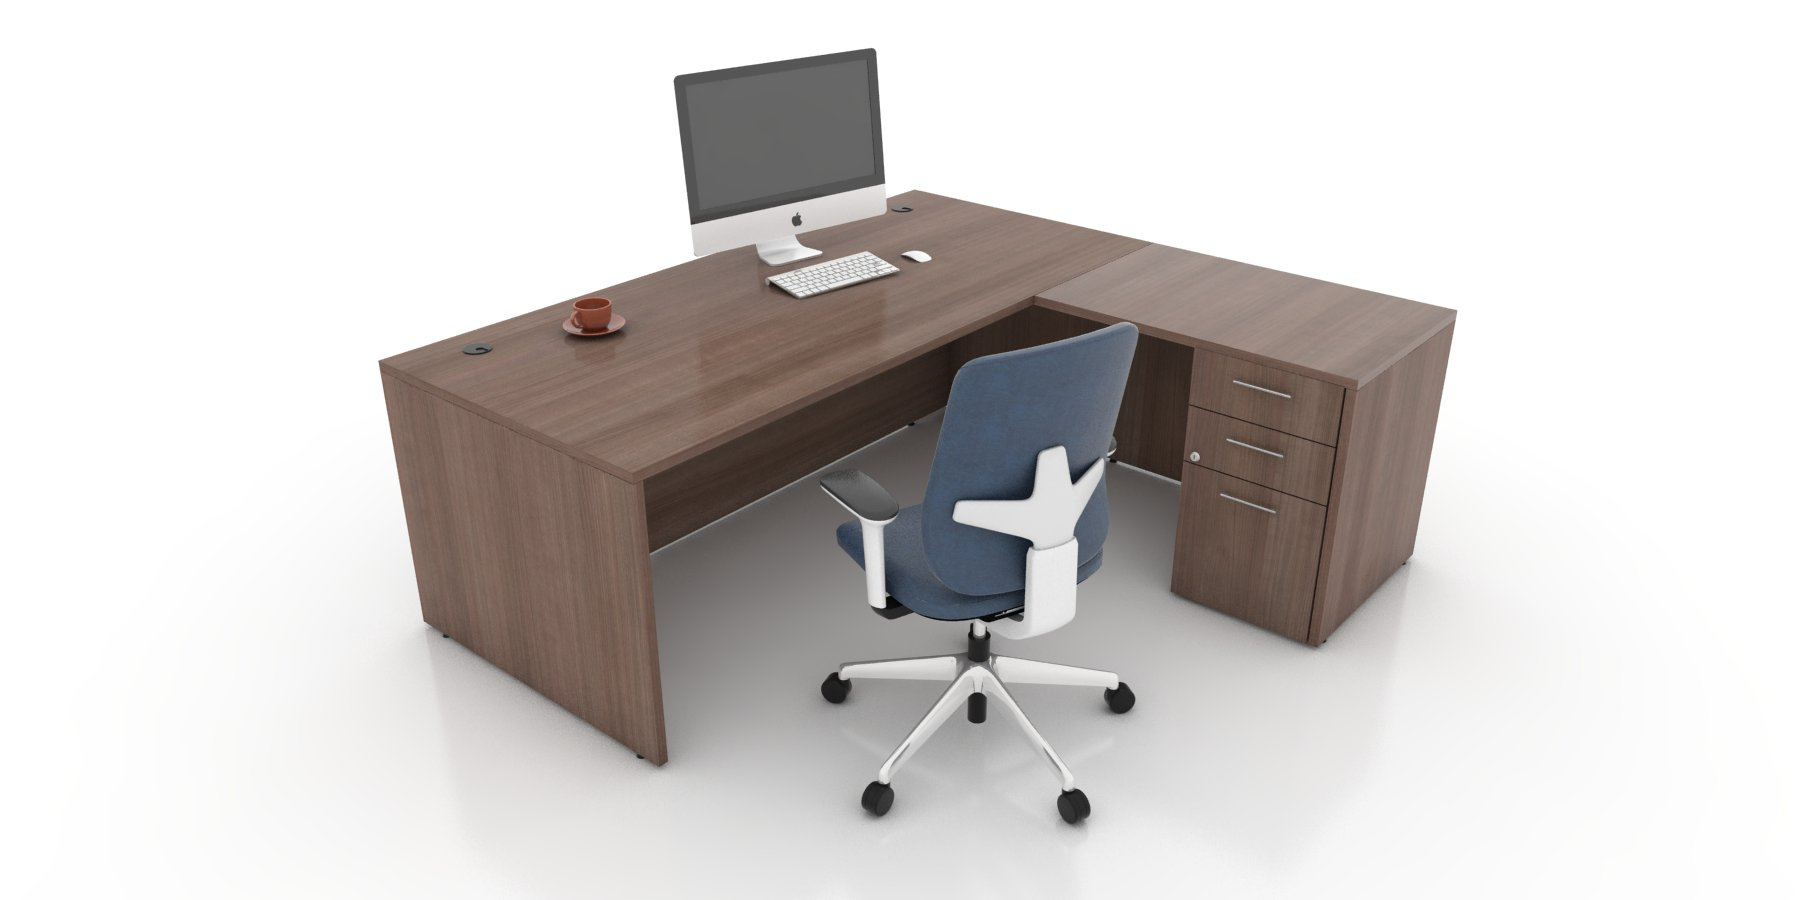 Office Furniture: Office Furniture Toronto New, Used, And Refurbished Desks